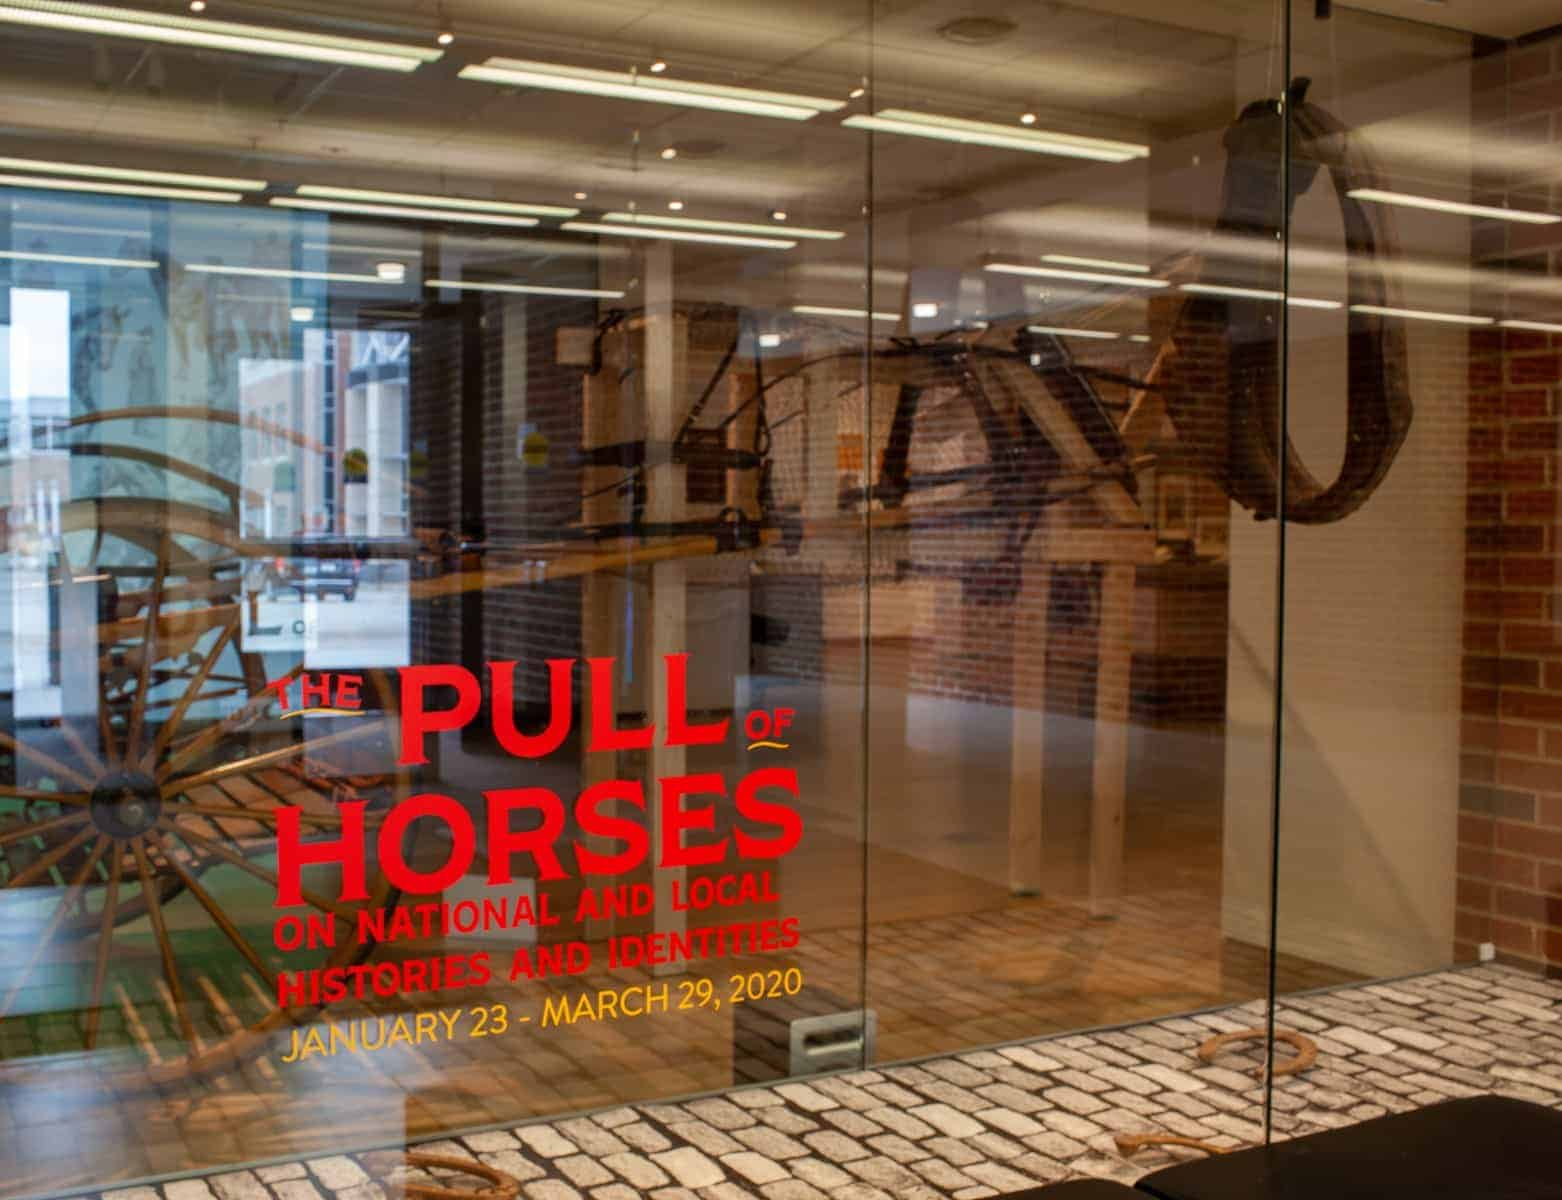 Outside the Main Library Gallery, the front window presented a preview of the exhibition. Printed cobblestone lined the bottom of the window case, and vintage draft horse shoes and a horse collar gave the illusion that an invisible horse was present.